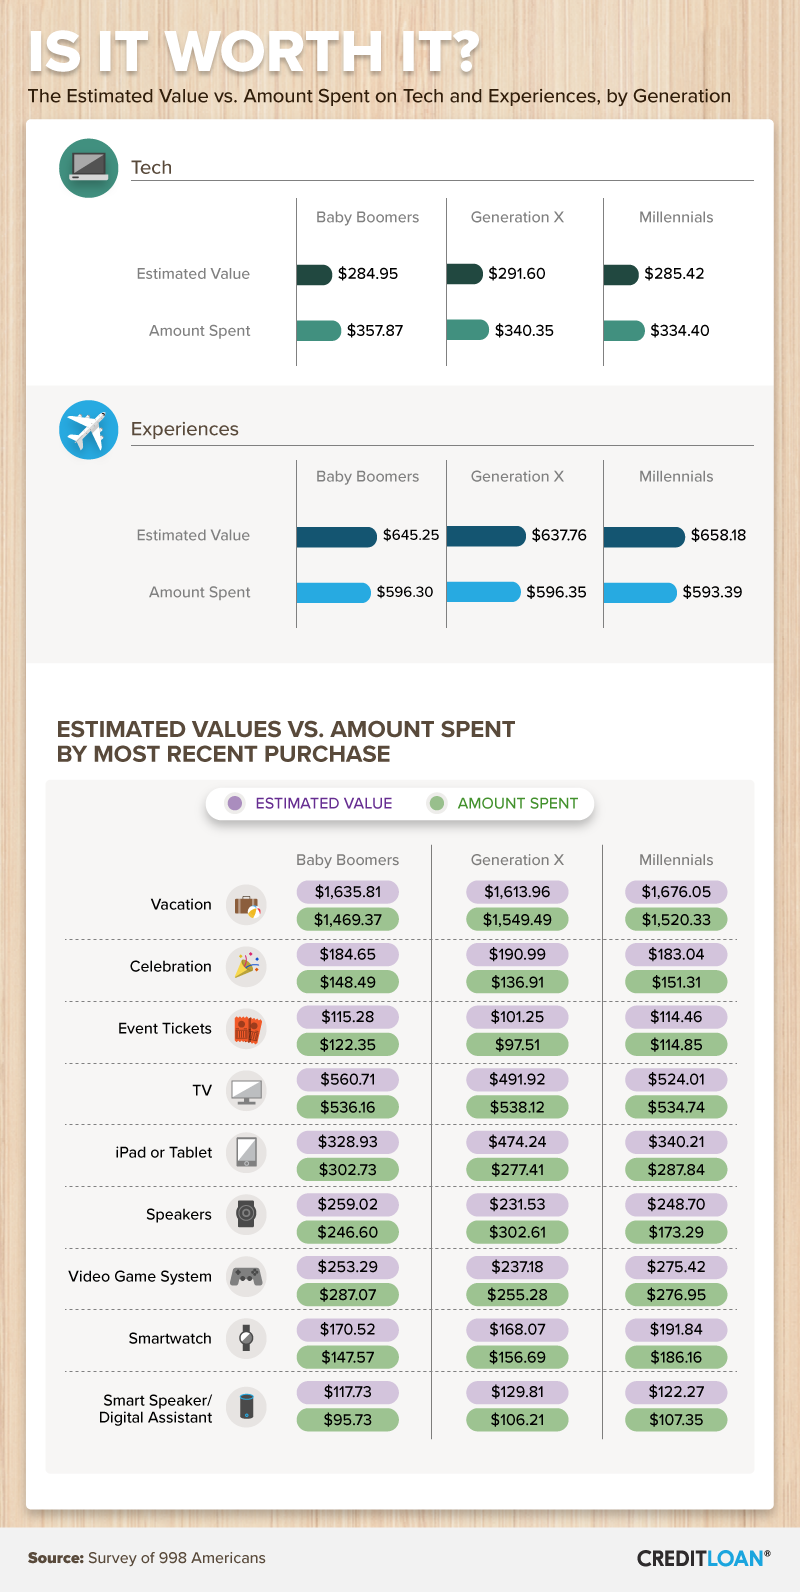 Is It Worth It?: The estimated value vs. amount spent on tech and experiences by generation